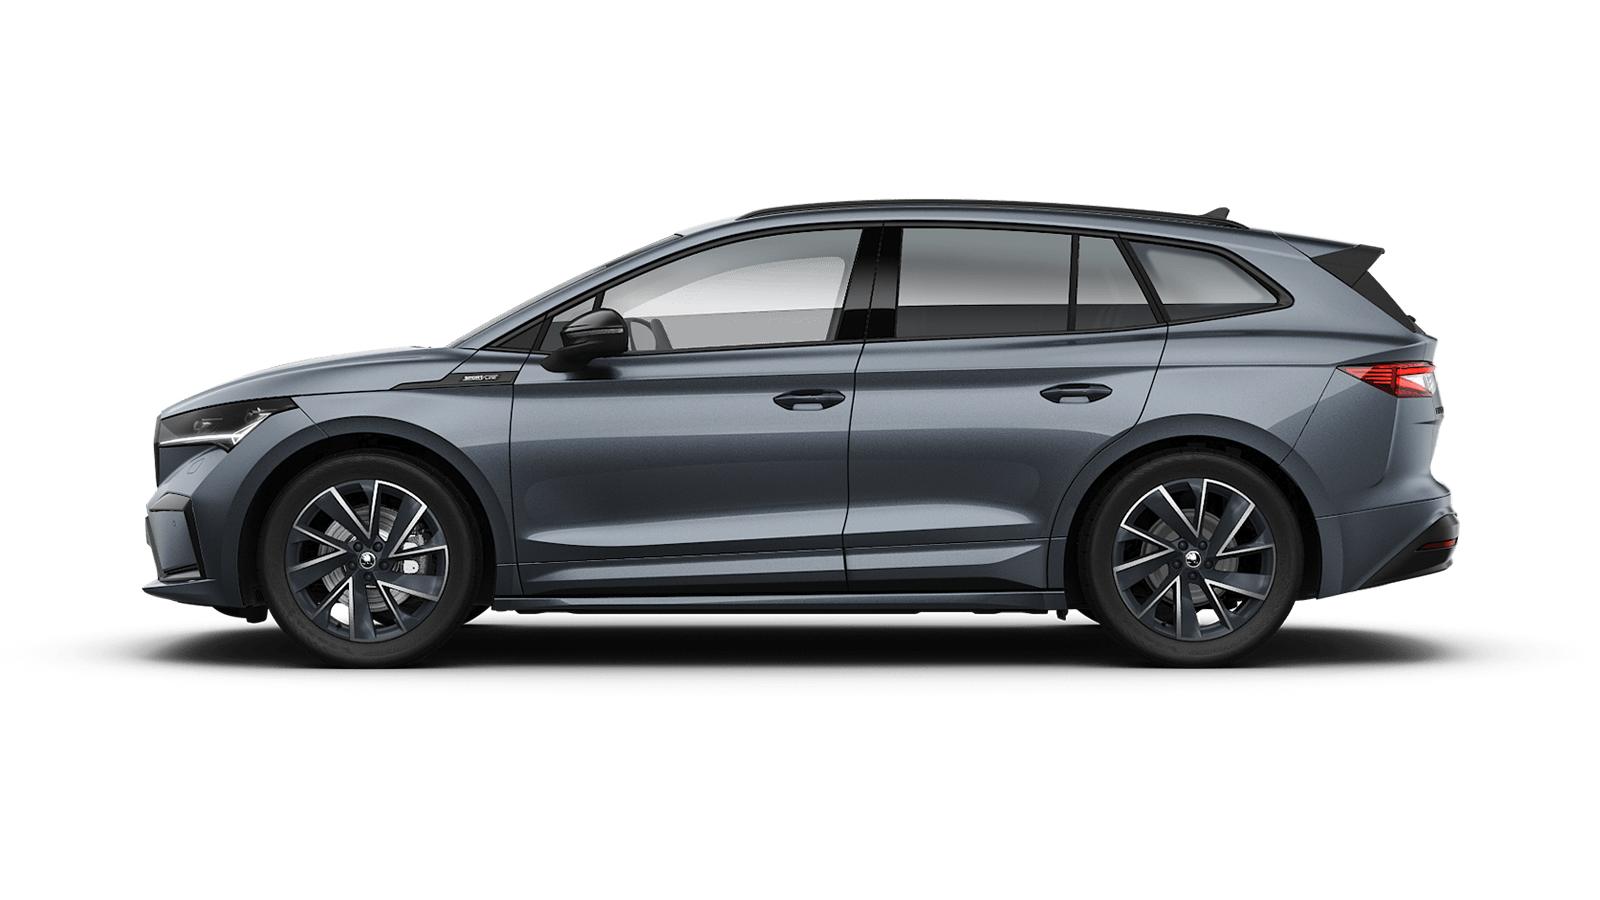 SEAT Ateca Black back - Clyde car subscription